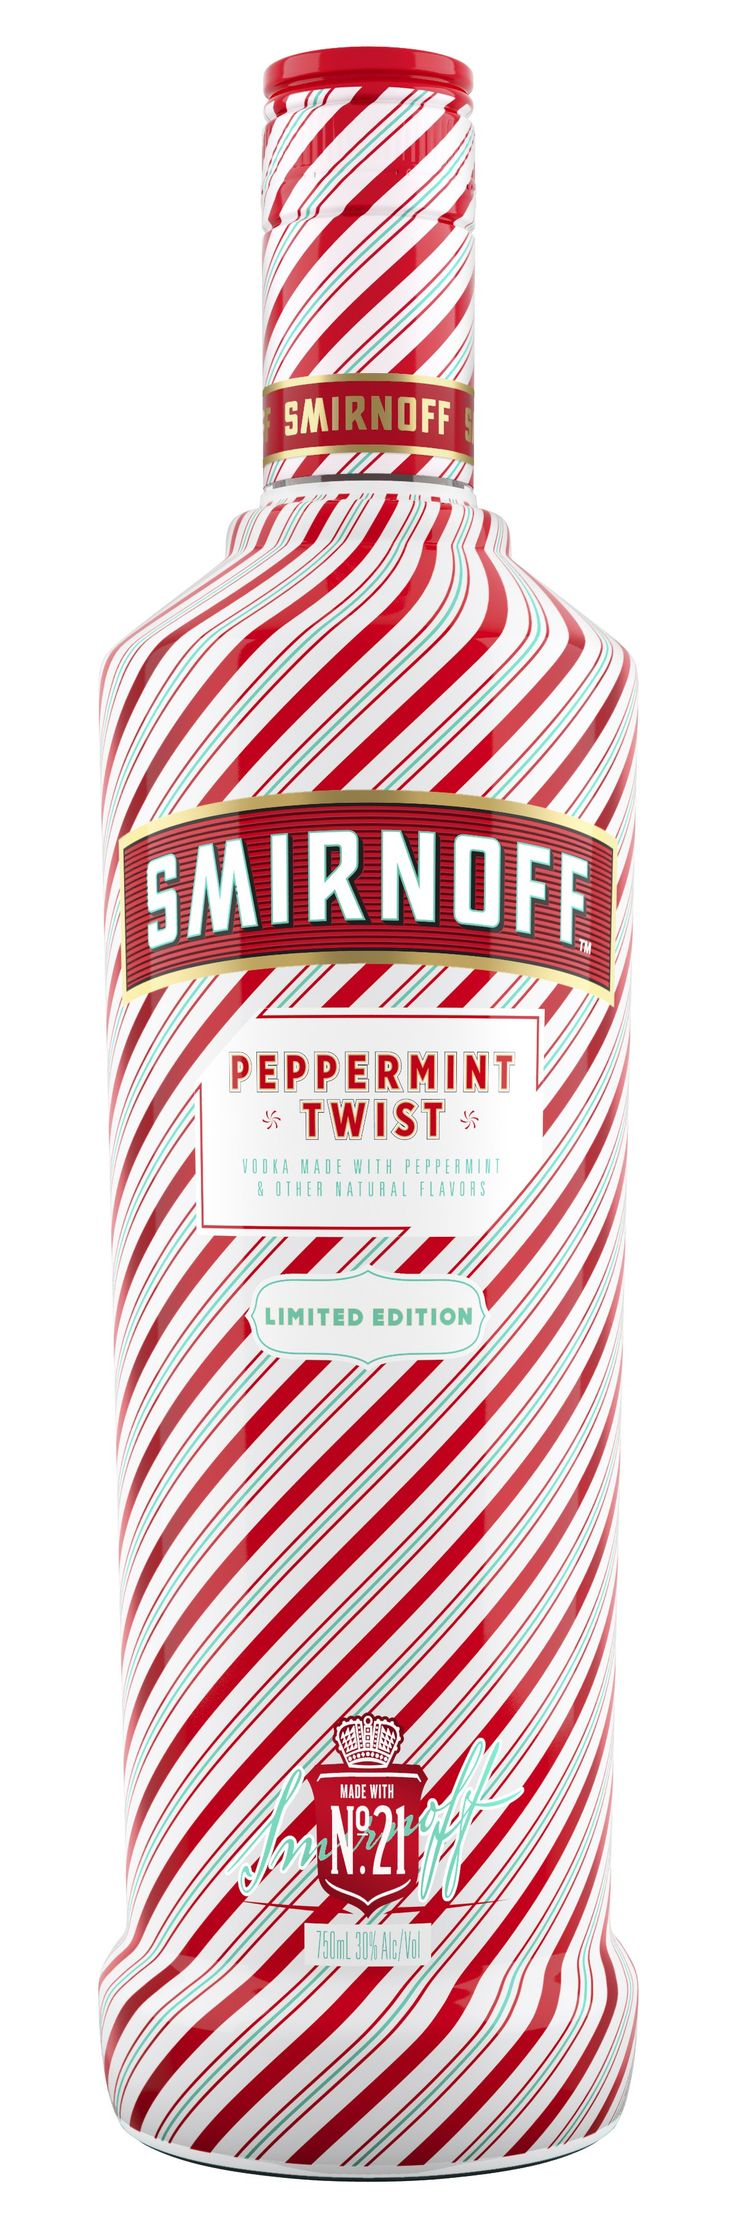 SMIRNOFF Peppermint Twist Cocktail Recipes